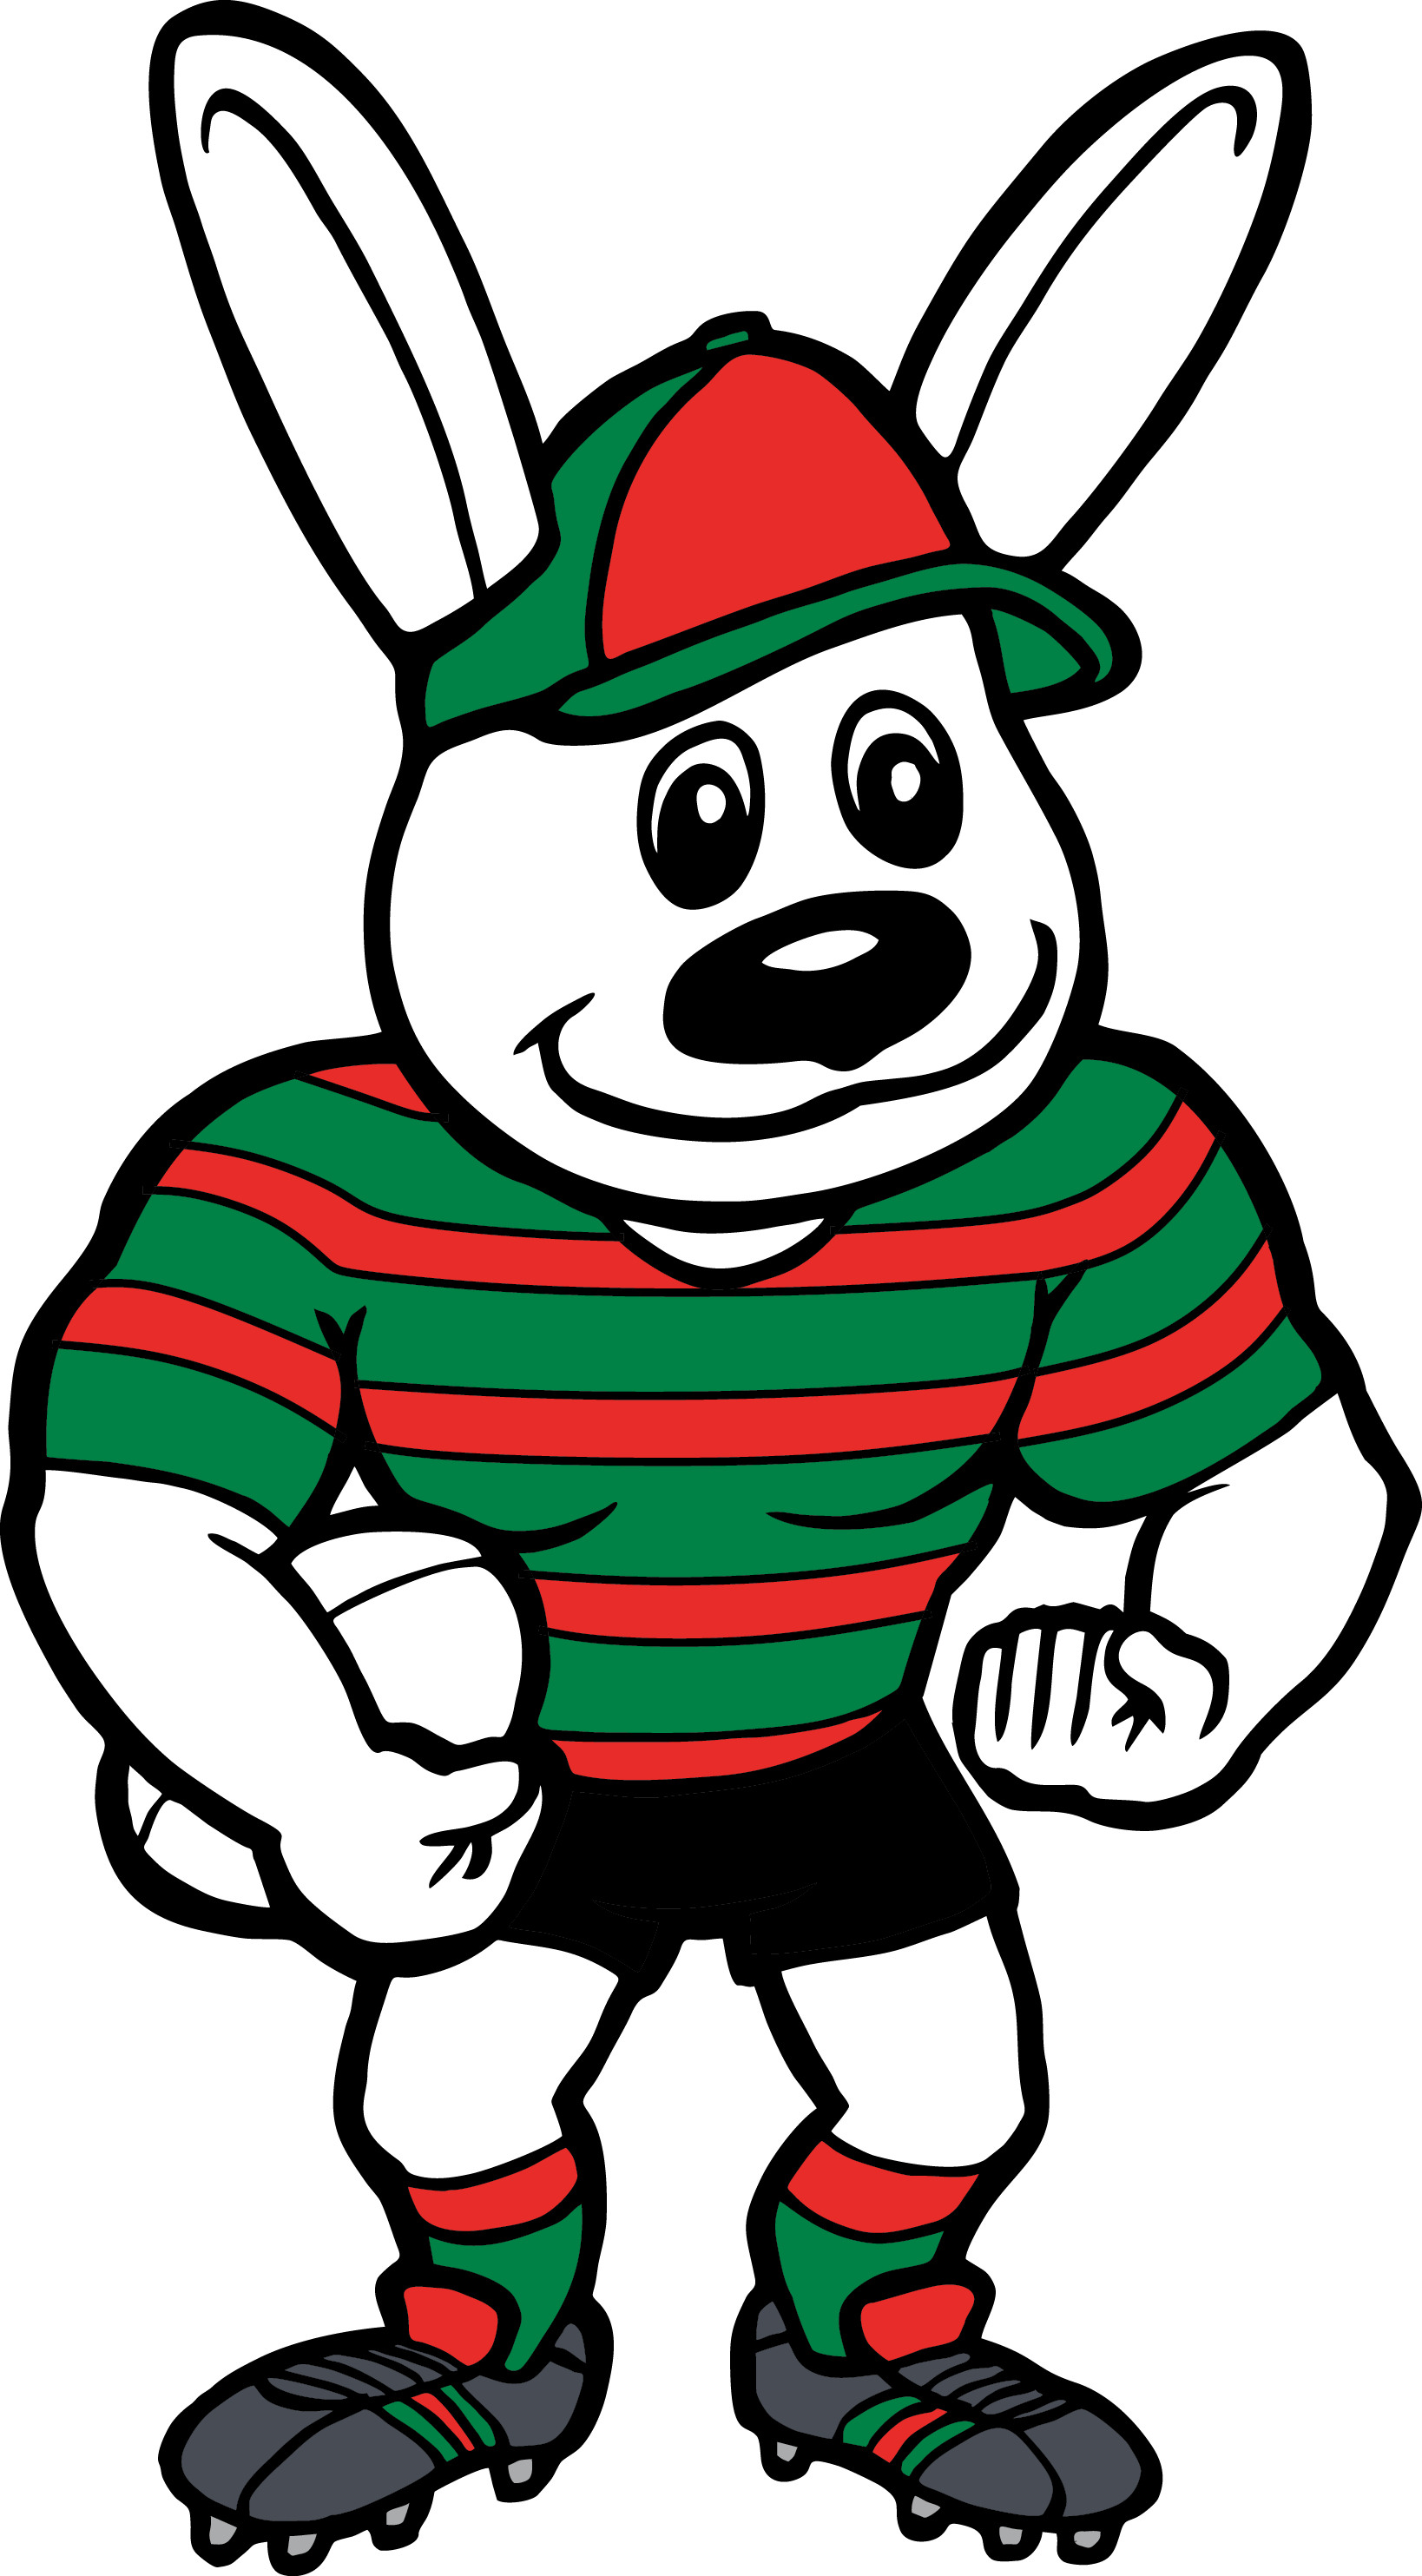 rabbitohs - photo #26